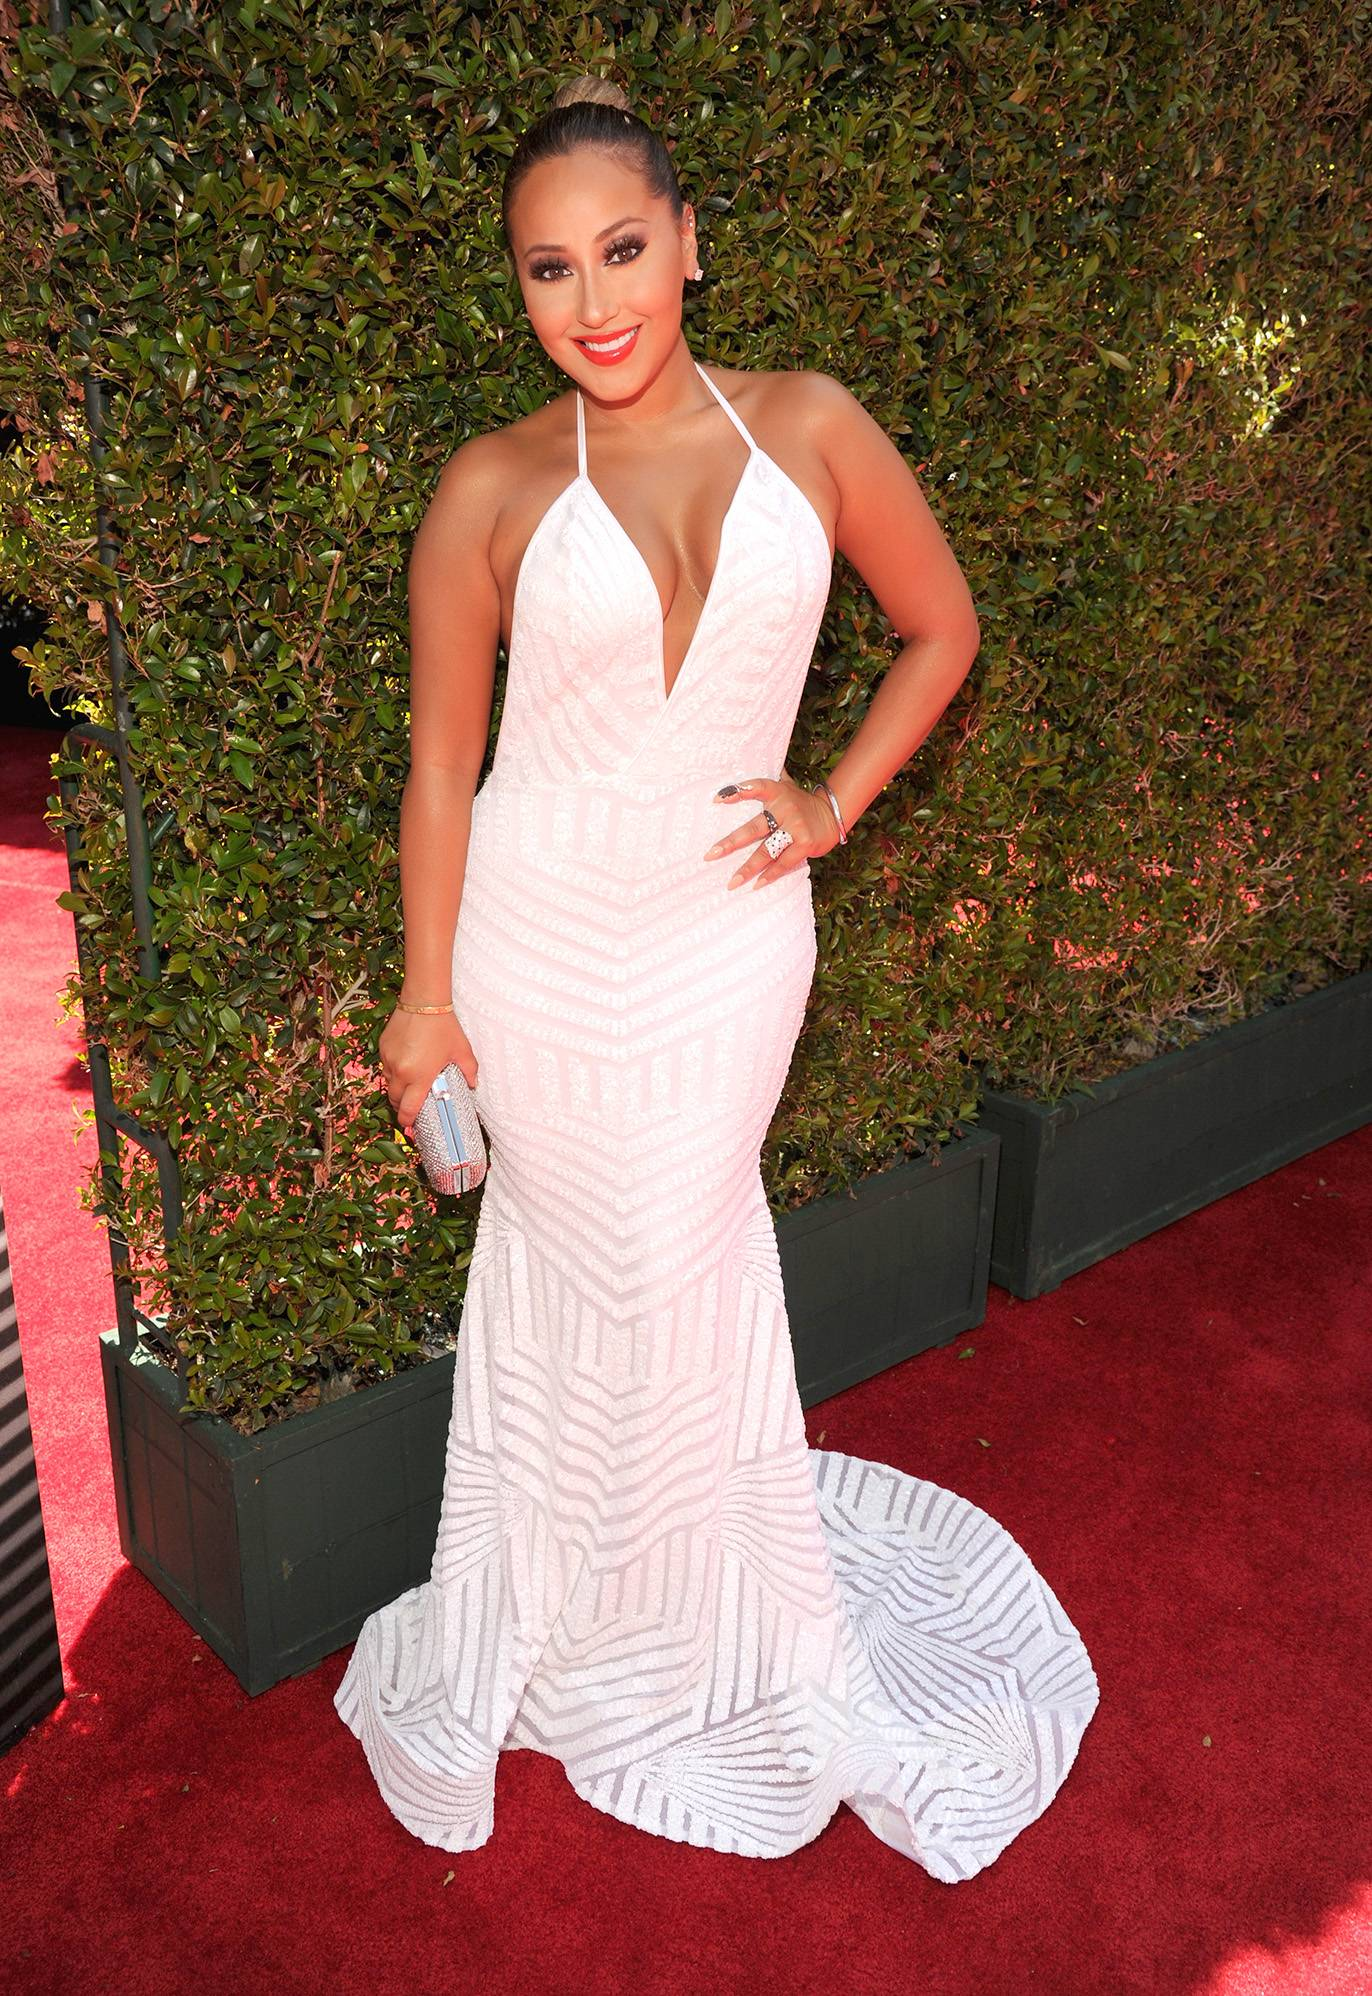 Adrienne Bailon - The actress and TV host is always a stunner and even more so in this white Michael Costello halter gown with a mermaid train. (Photo: Kevin Mazur/BET/Getty Images for BET)